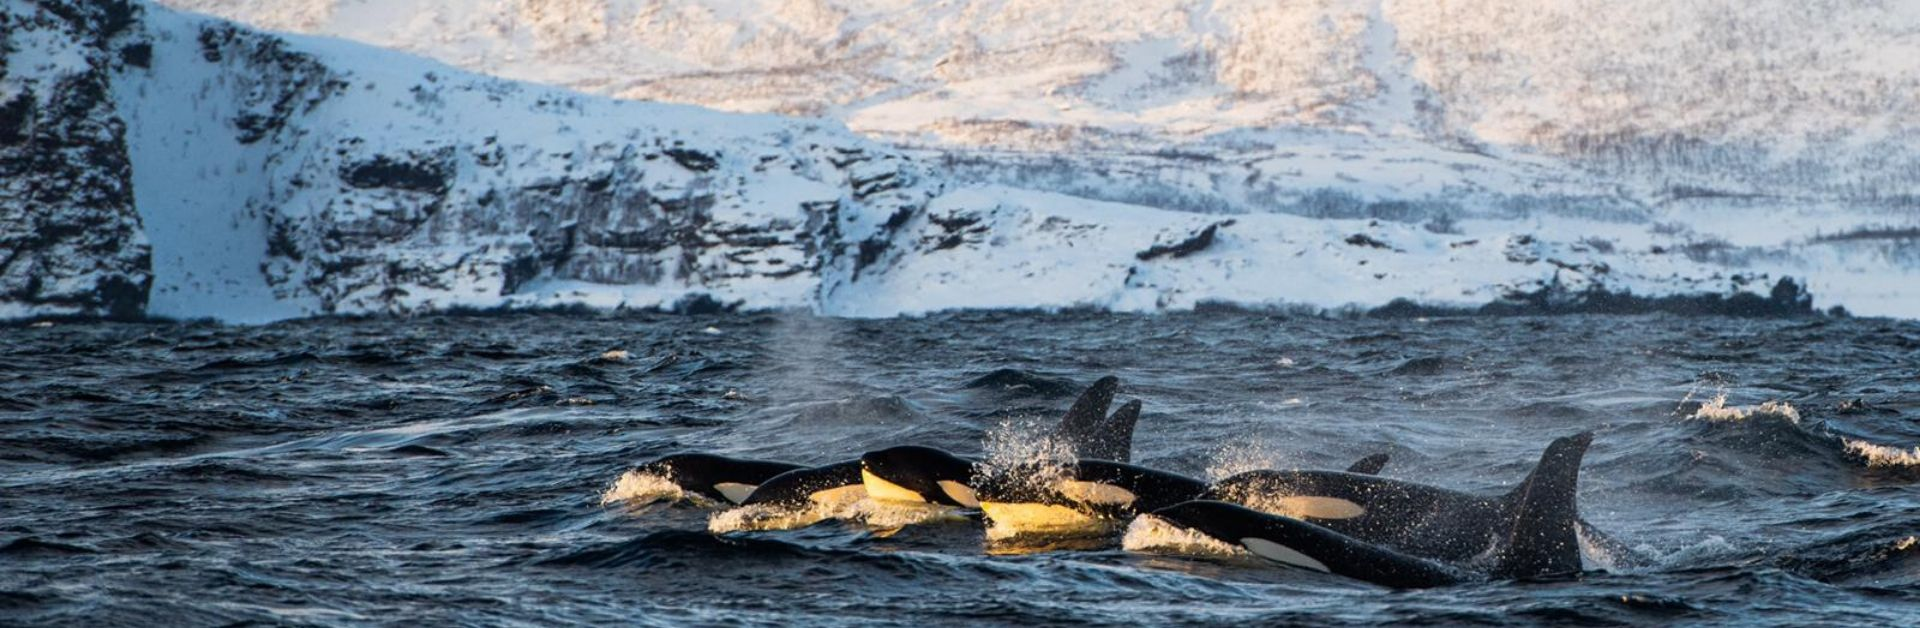 Winter whales of norway